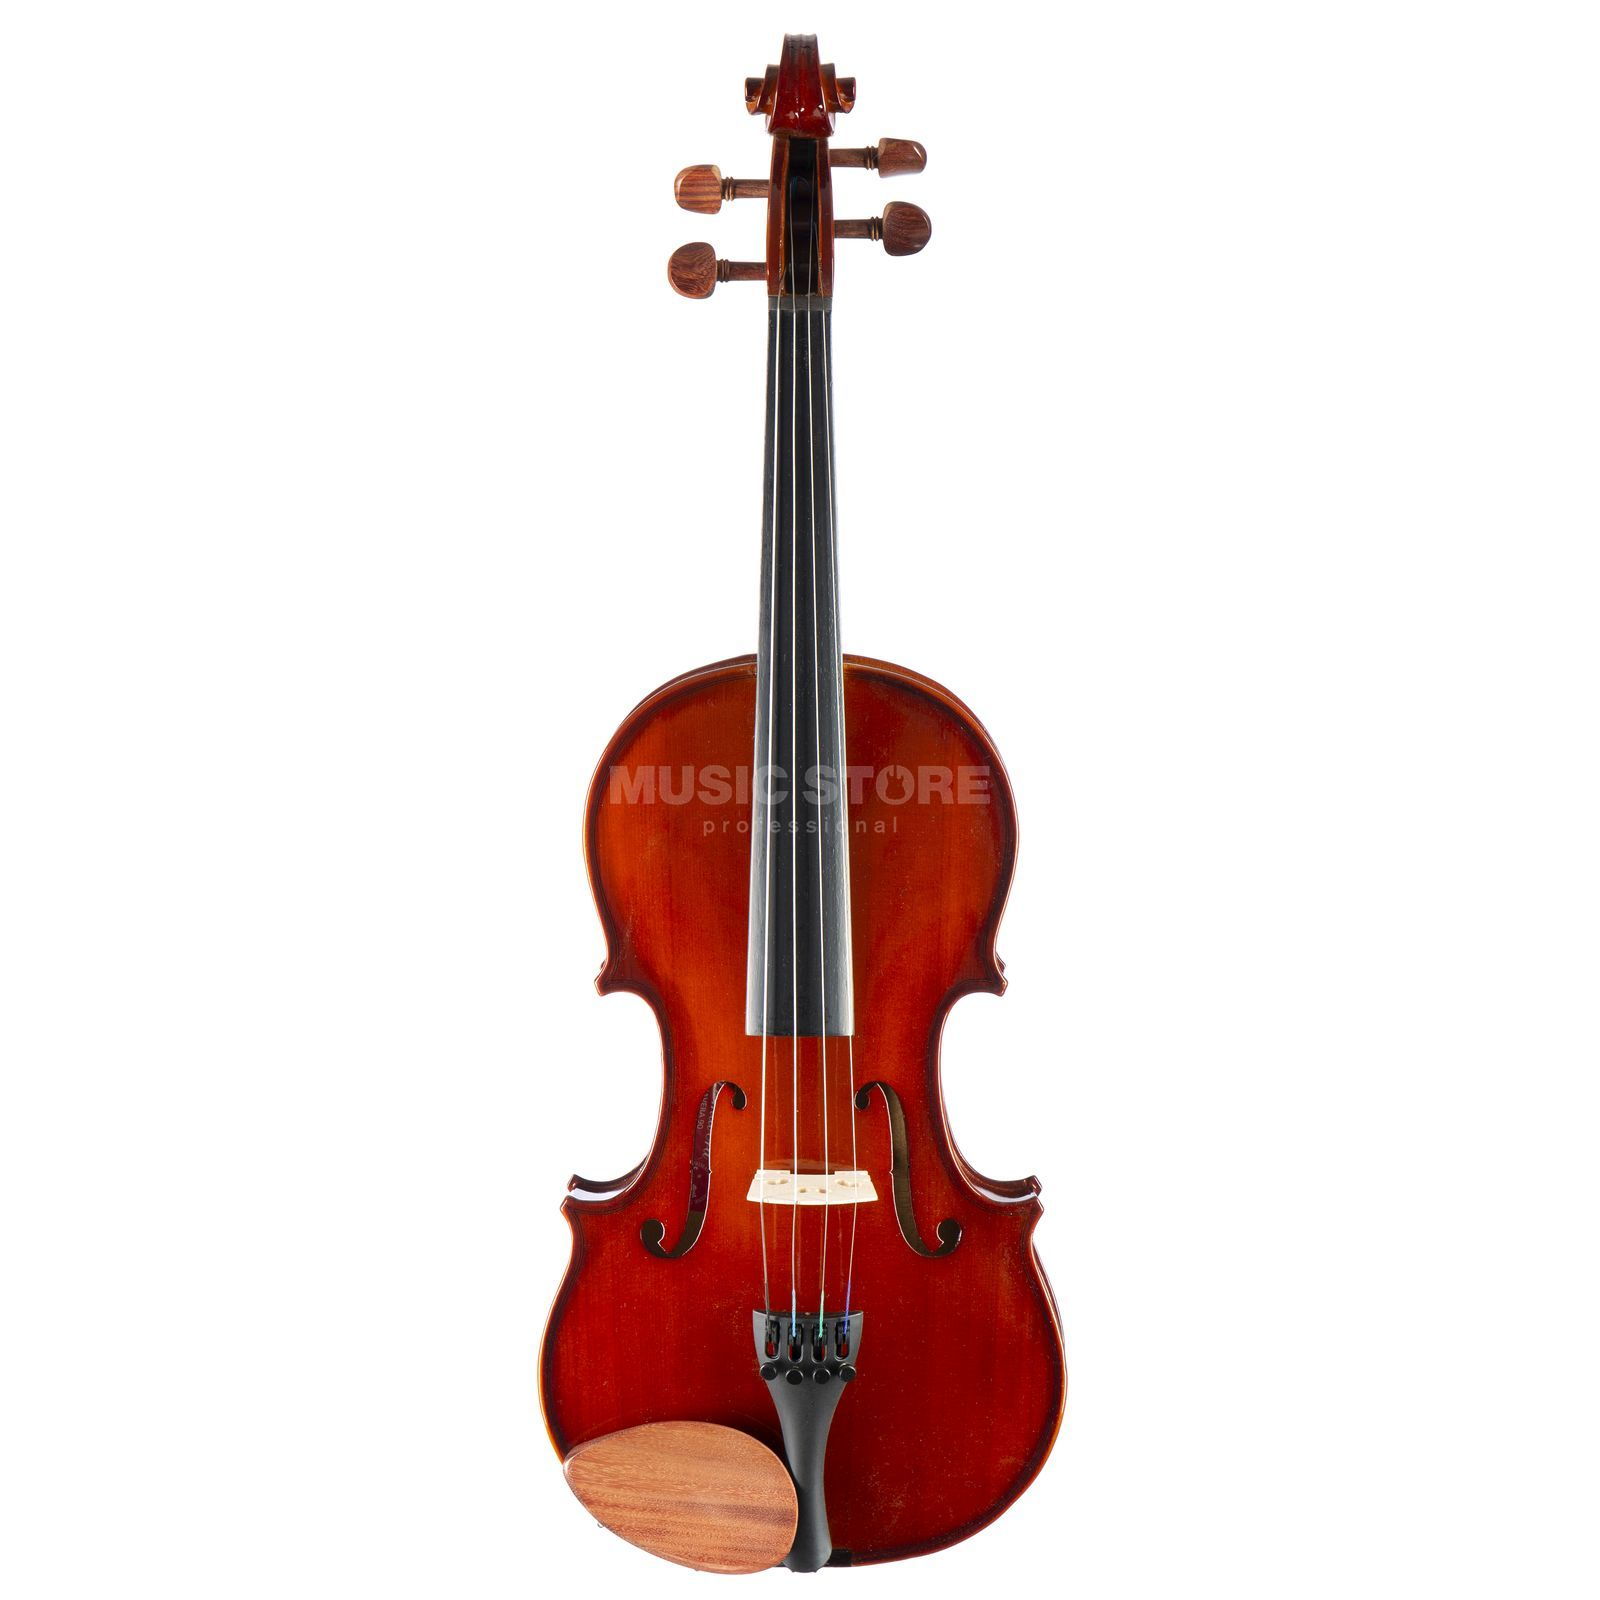 Primavera 90 - 4/4 Violin Outfit VF002N incl. Case and Bow Produktbillede